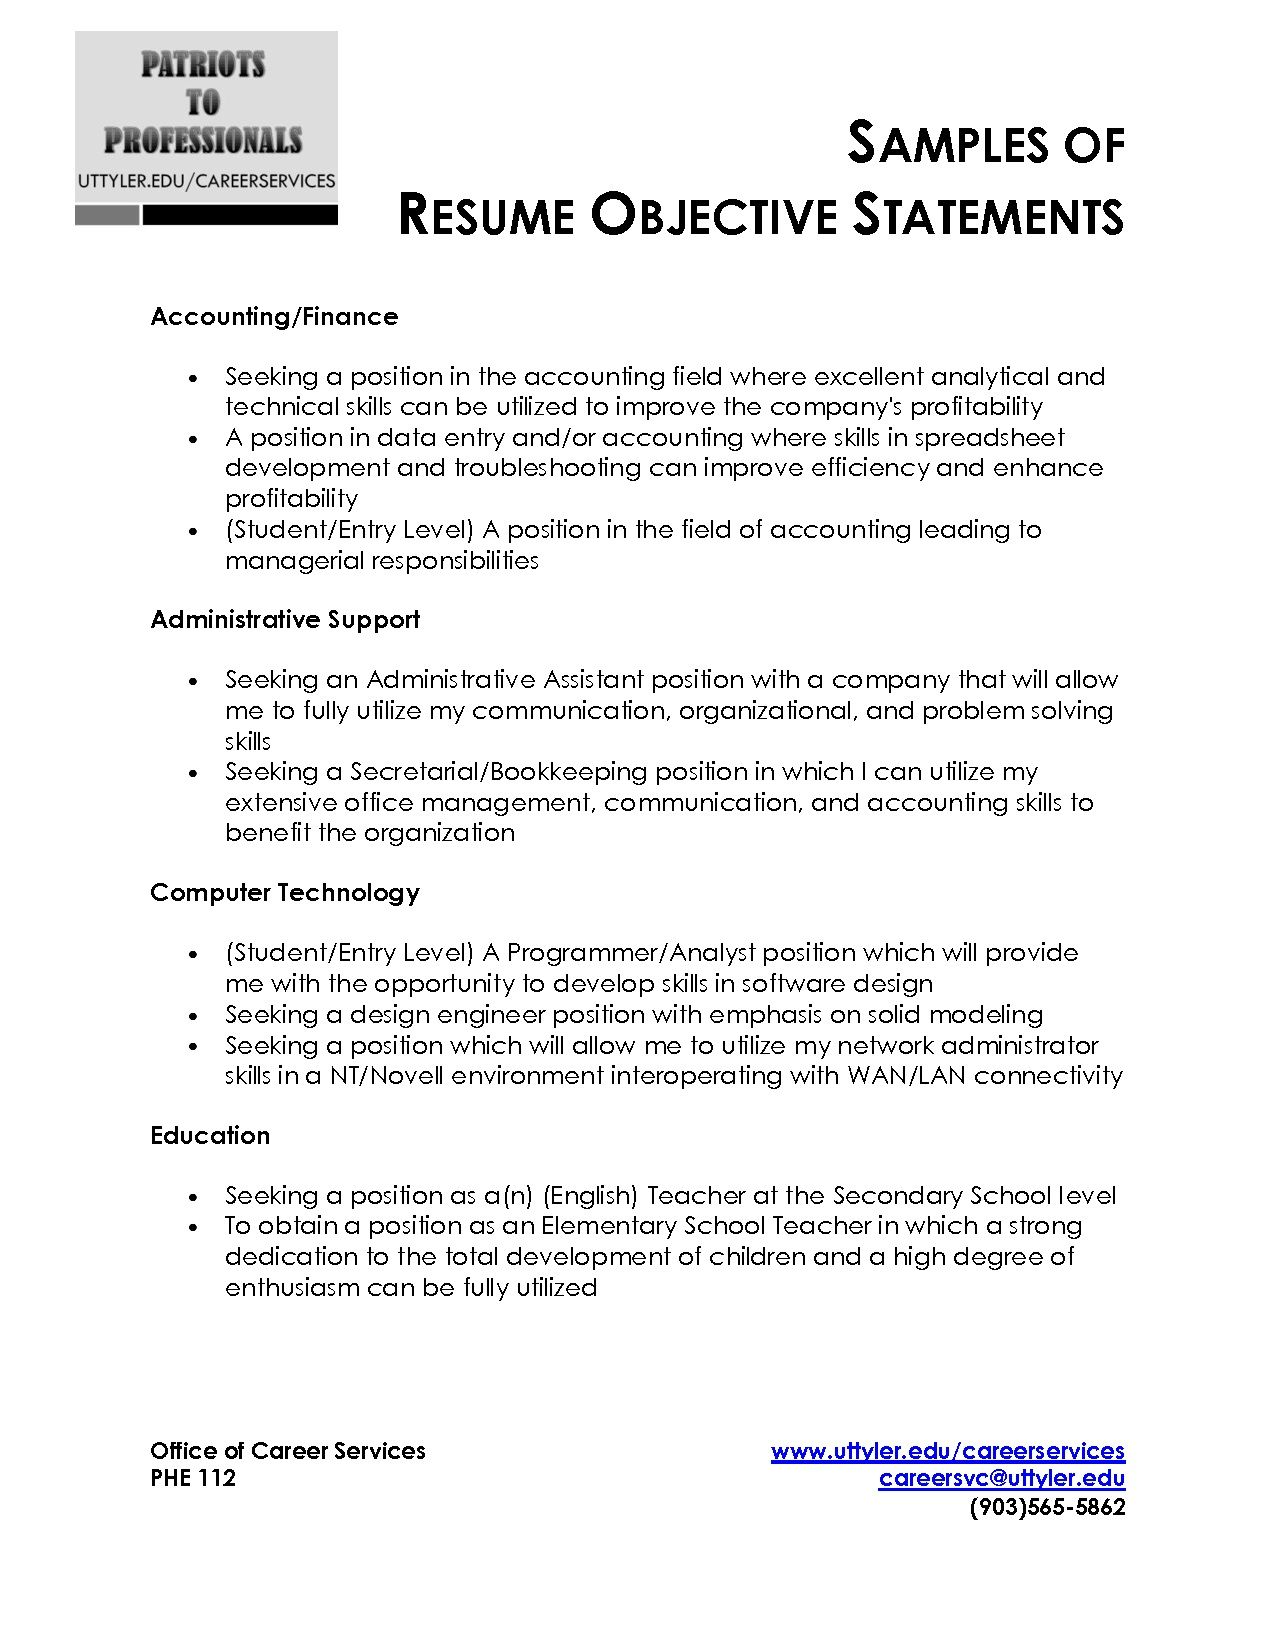 Sample Resume Objective Statement   (adsbygoogle U003d Window.adsbygoogle ||  []).push(); Sample Resume Objective Statement Will Give Ideas And  Strategies To ...